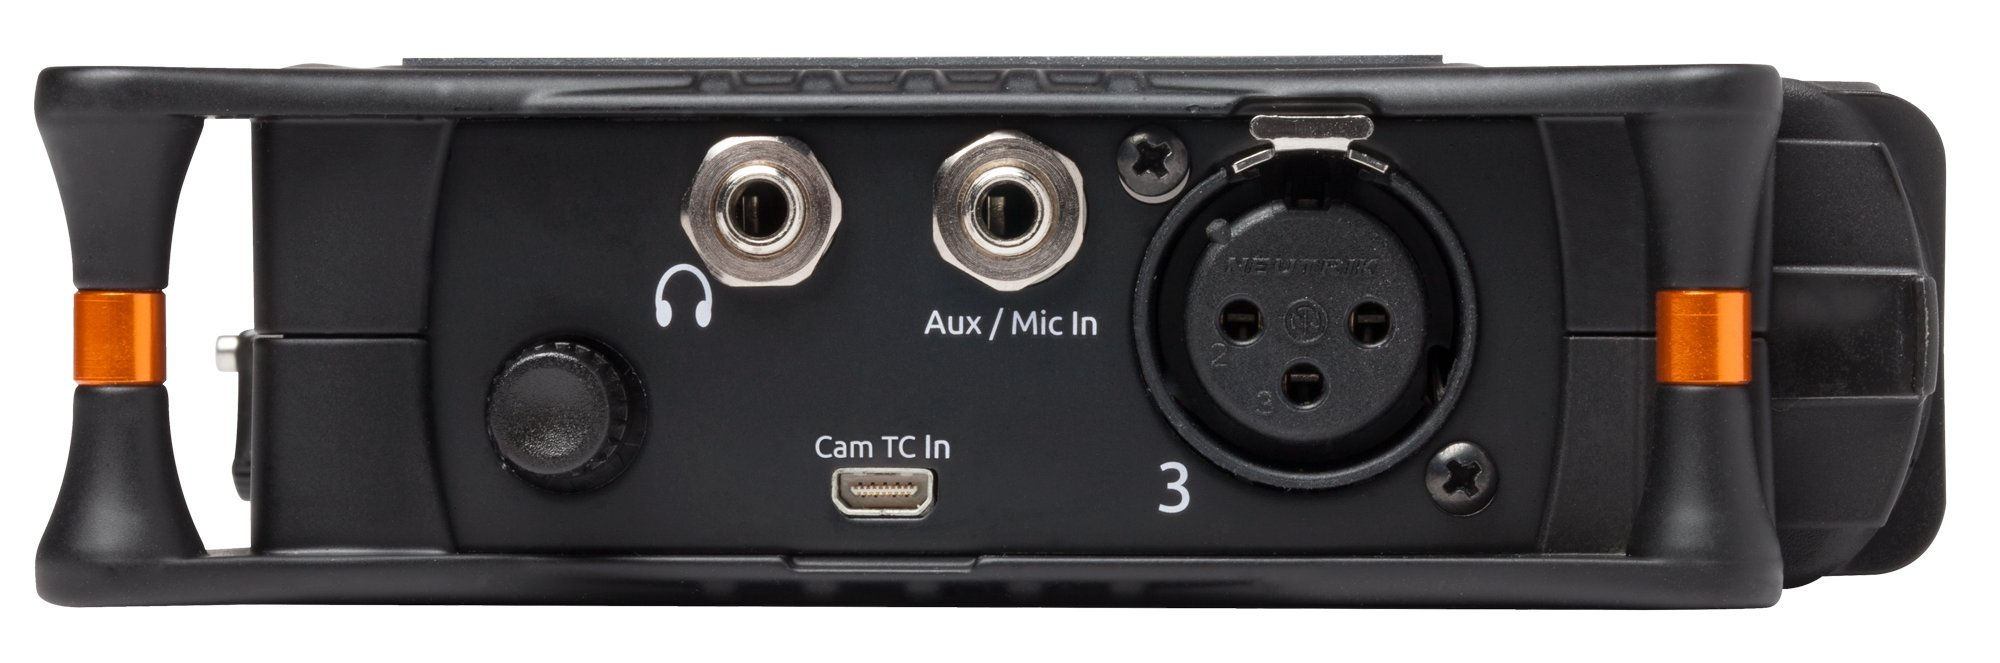 Sound Devices MixPre-3 Portable Multichannel Audio Recorder/Mixer, and USB Audio Interface by Sound Devices (Image #3)